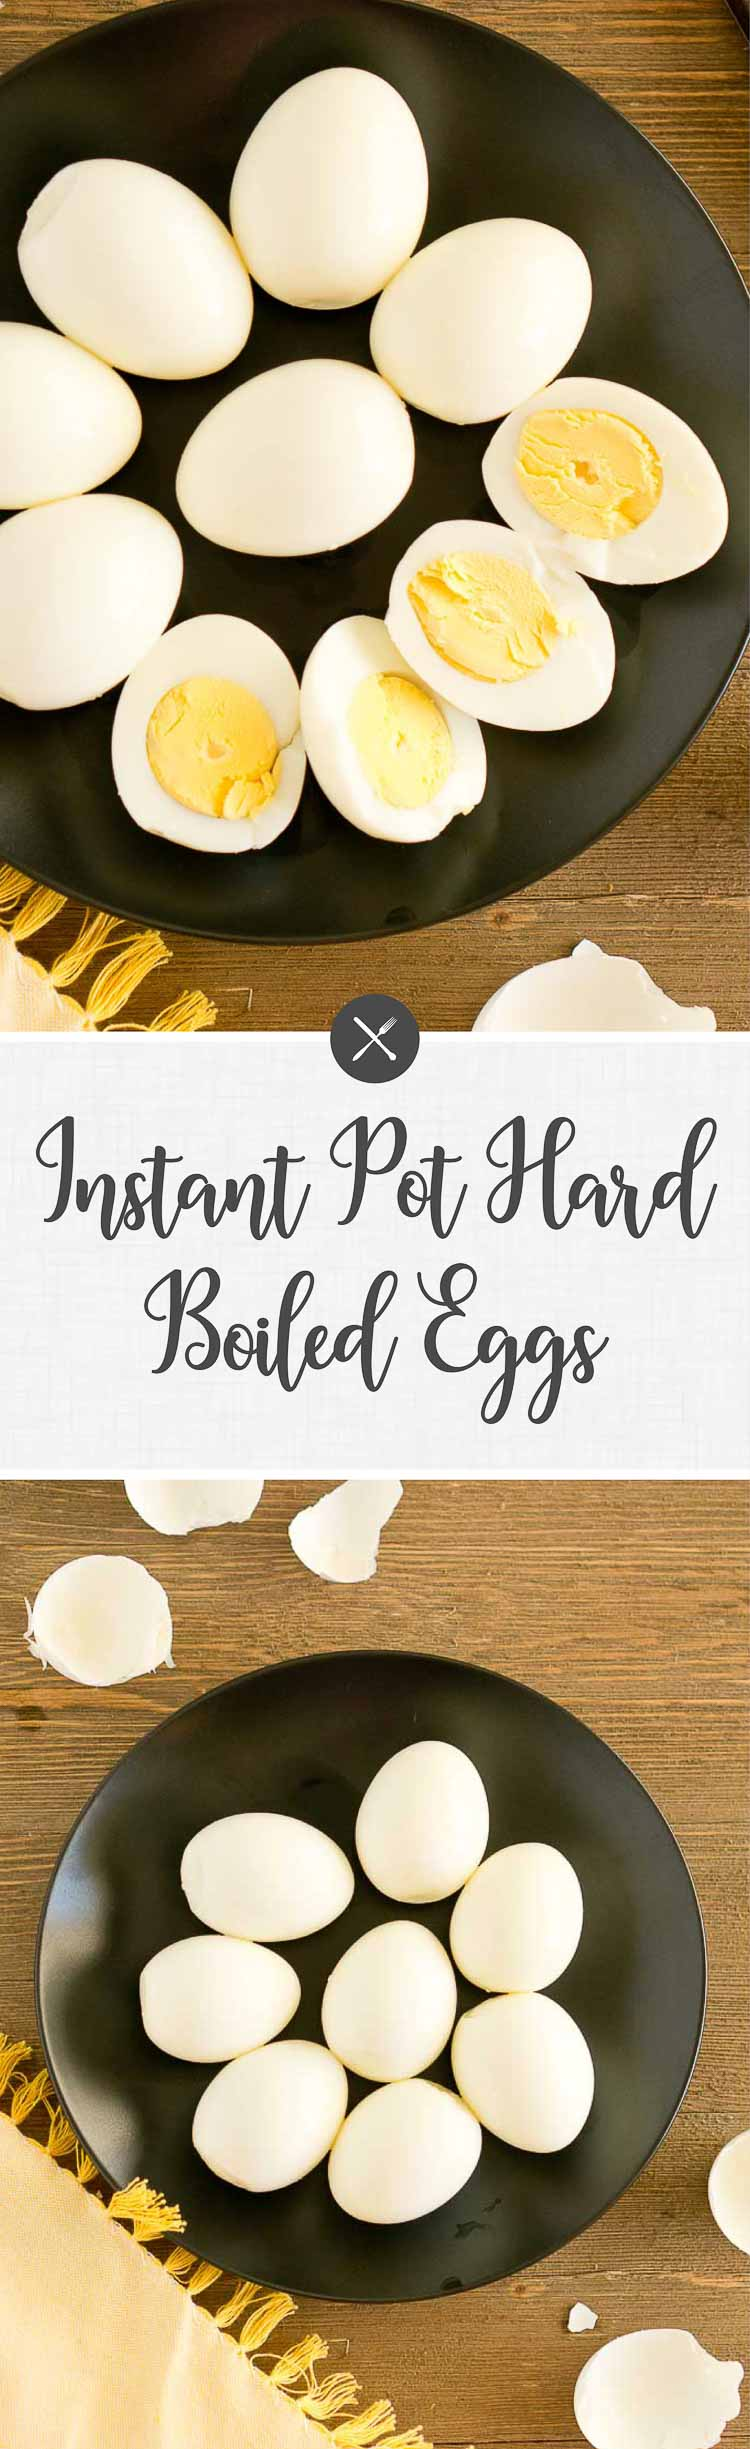 These easy Instant Pot Hard Boiled Eggs cook in 15 minutes. They cook perfectly every time and are super easy to peel. Perfect for snacks or appetizers. #instantpot #hardboiledeggs #Easter #thanksgiving #holiday #recipes #breakfast #mealplanning